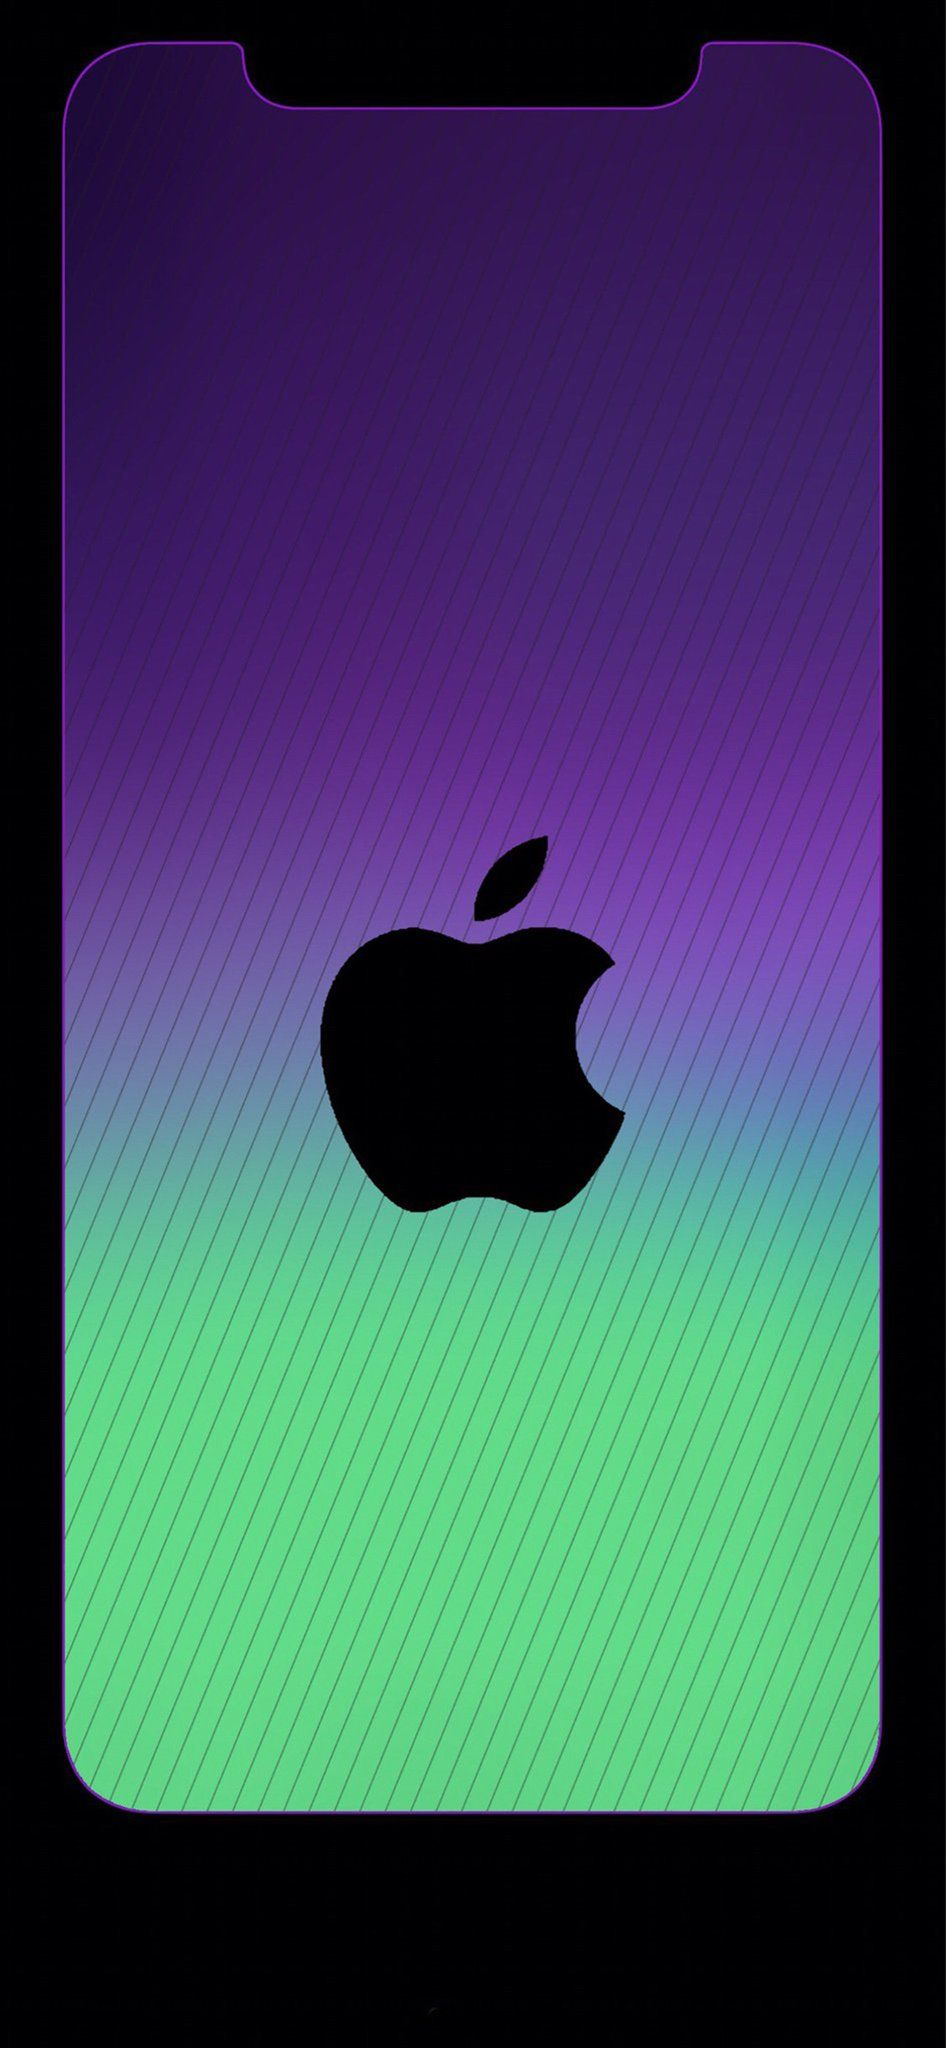 Apple #iPhone #iPad #iOS ...